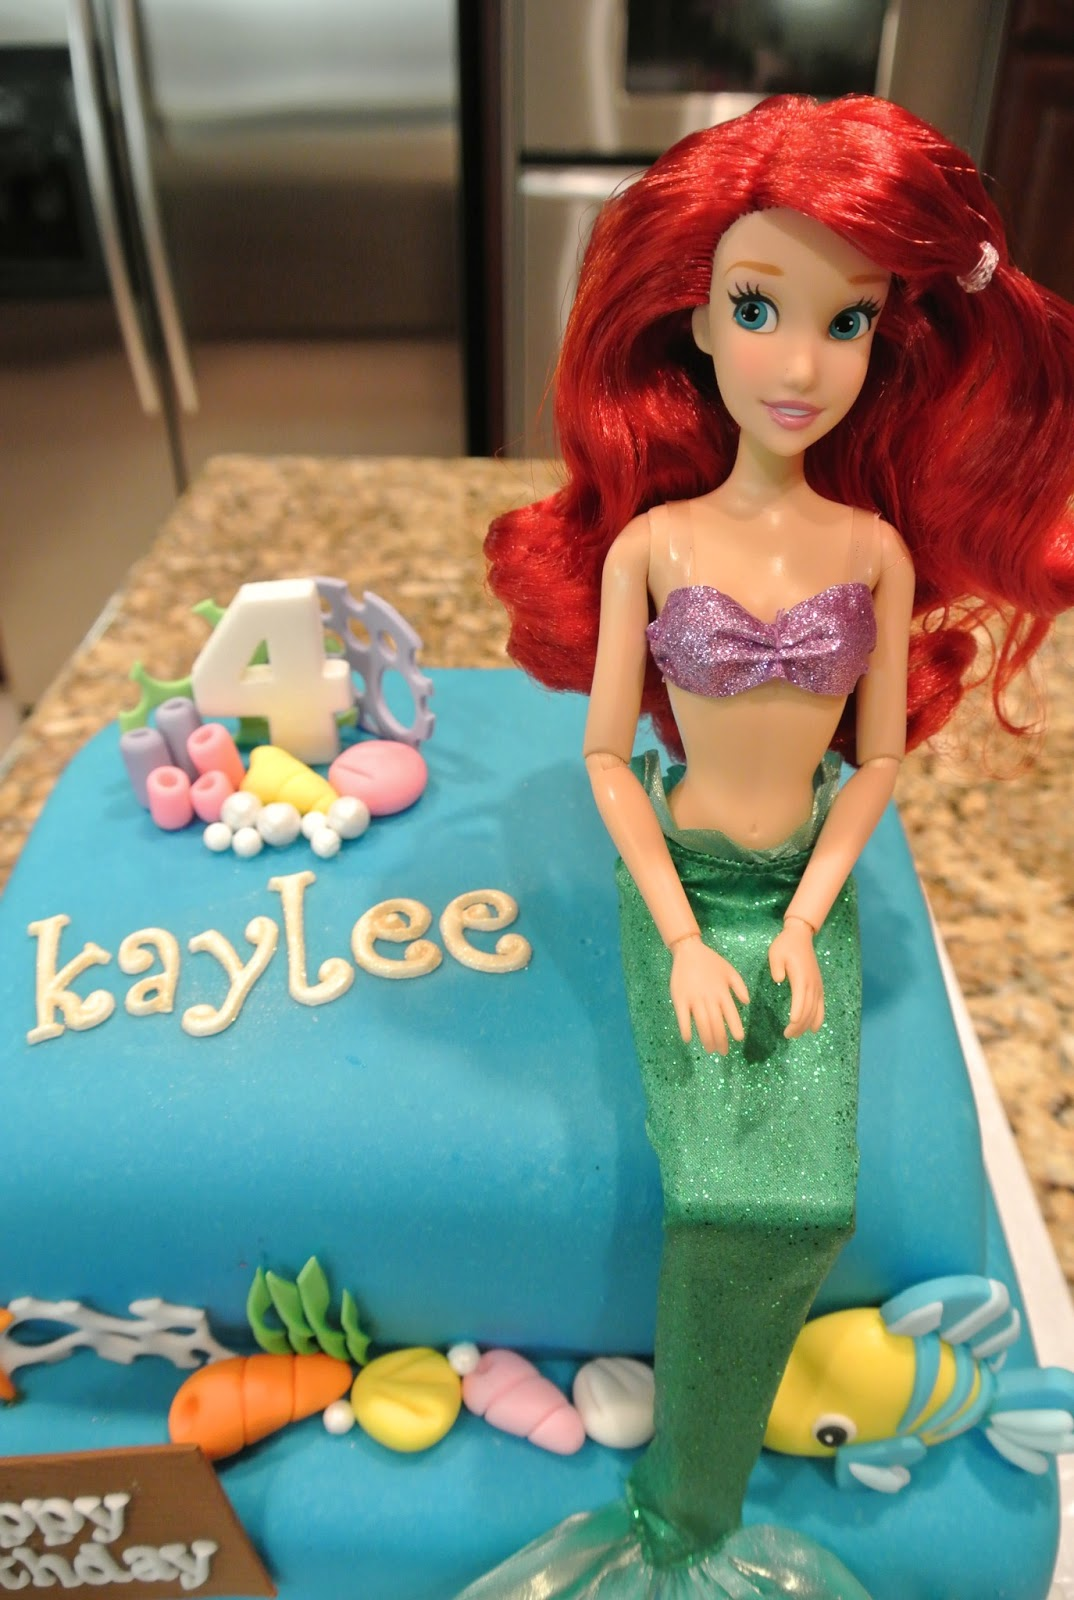 Beautiful Kitchen Little Mermaid Cake for Kaylees 4th Birthday